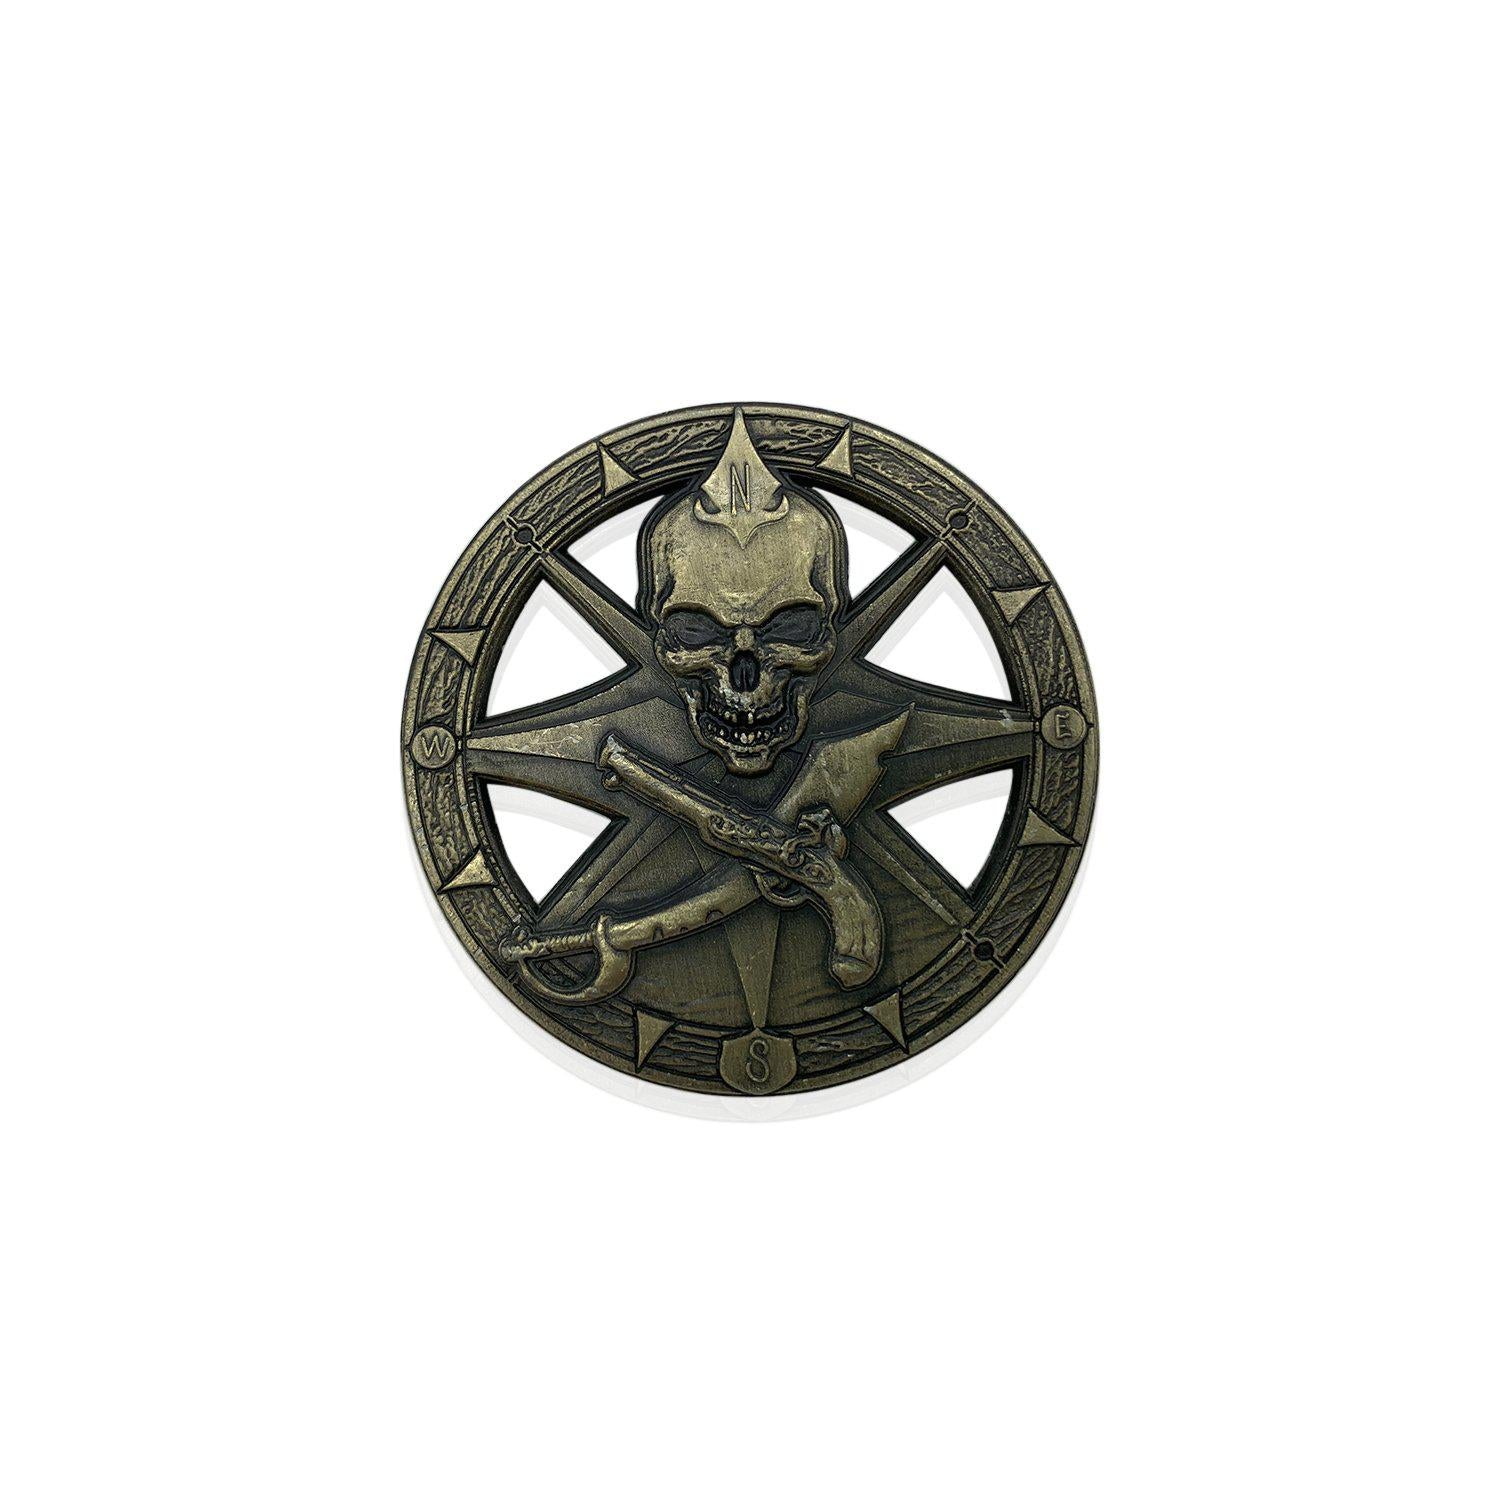 Pirate Compass Rose 50mm Metal